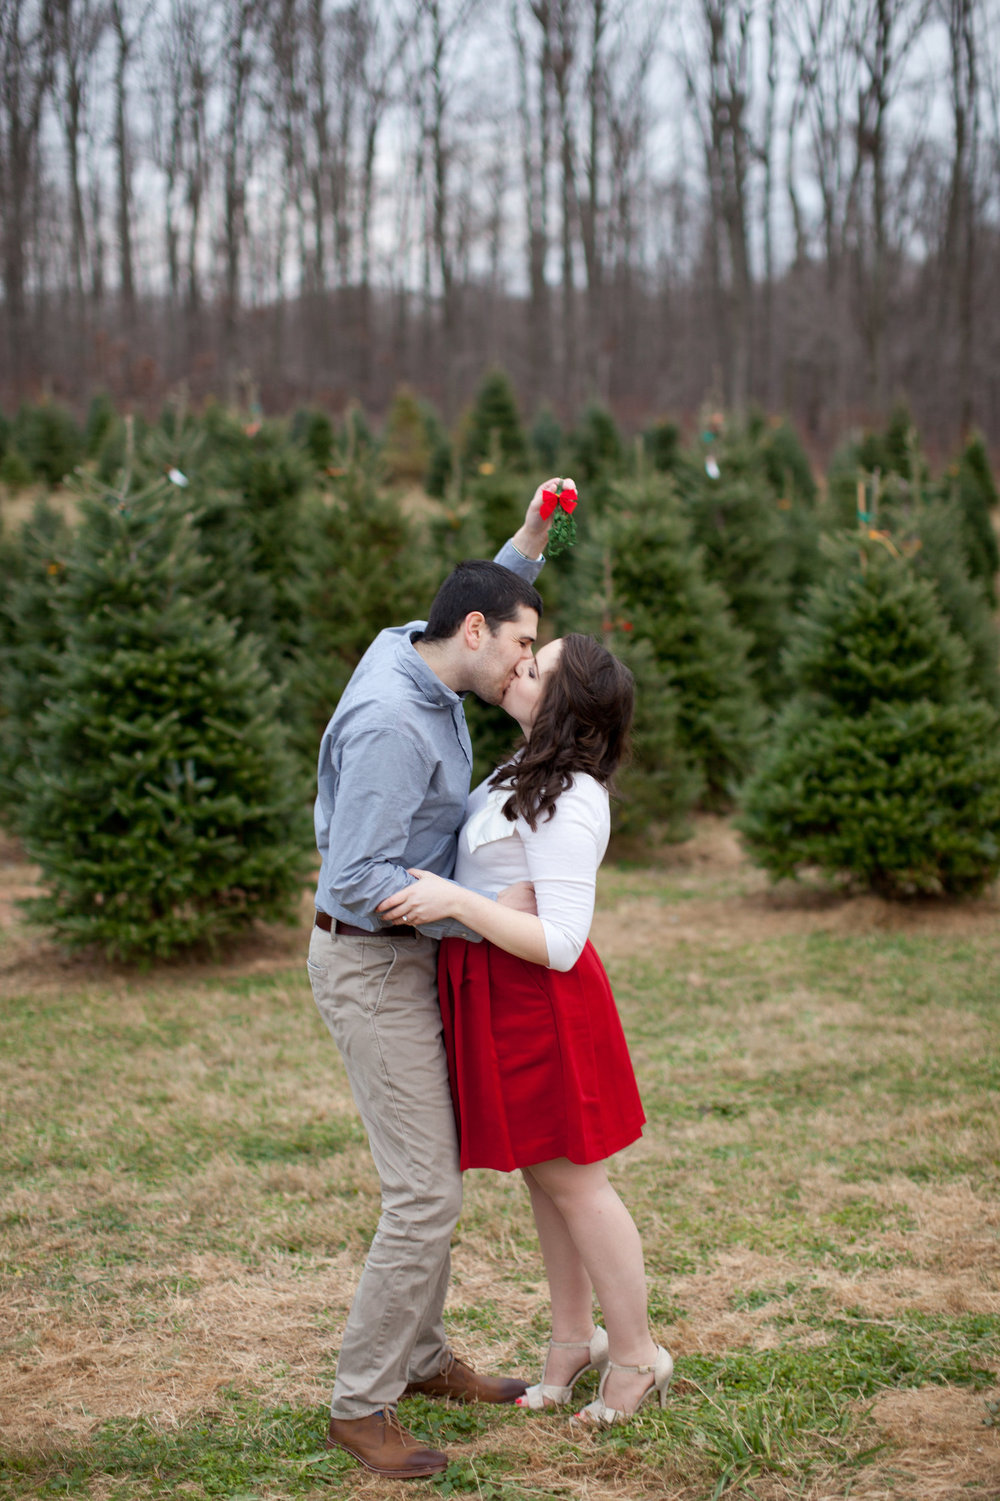 Mistletoe Christmas Tree Farm Engagement Shoot Sincerely Pete Events Liz and Ryan Photography